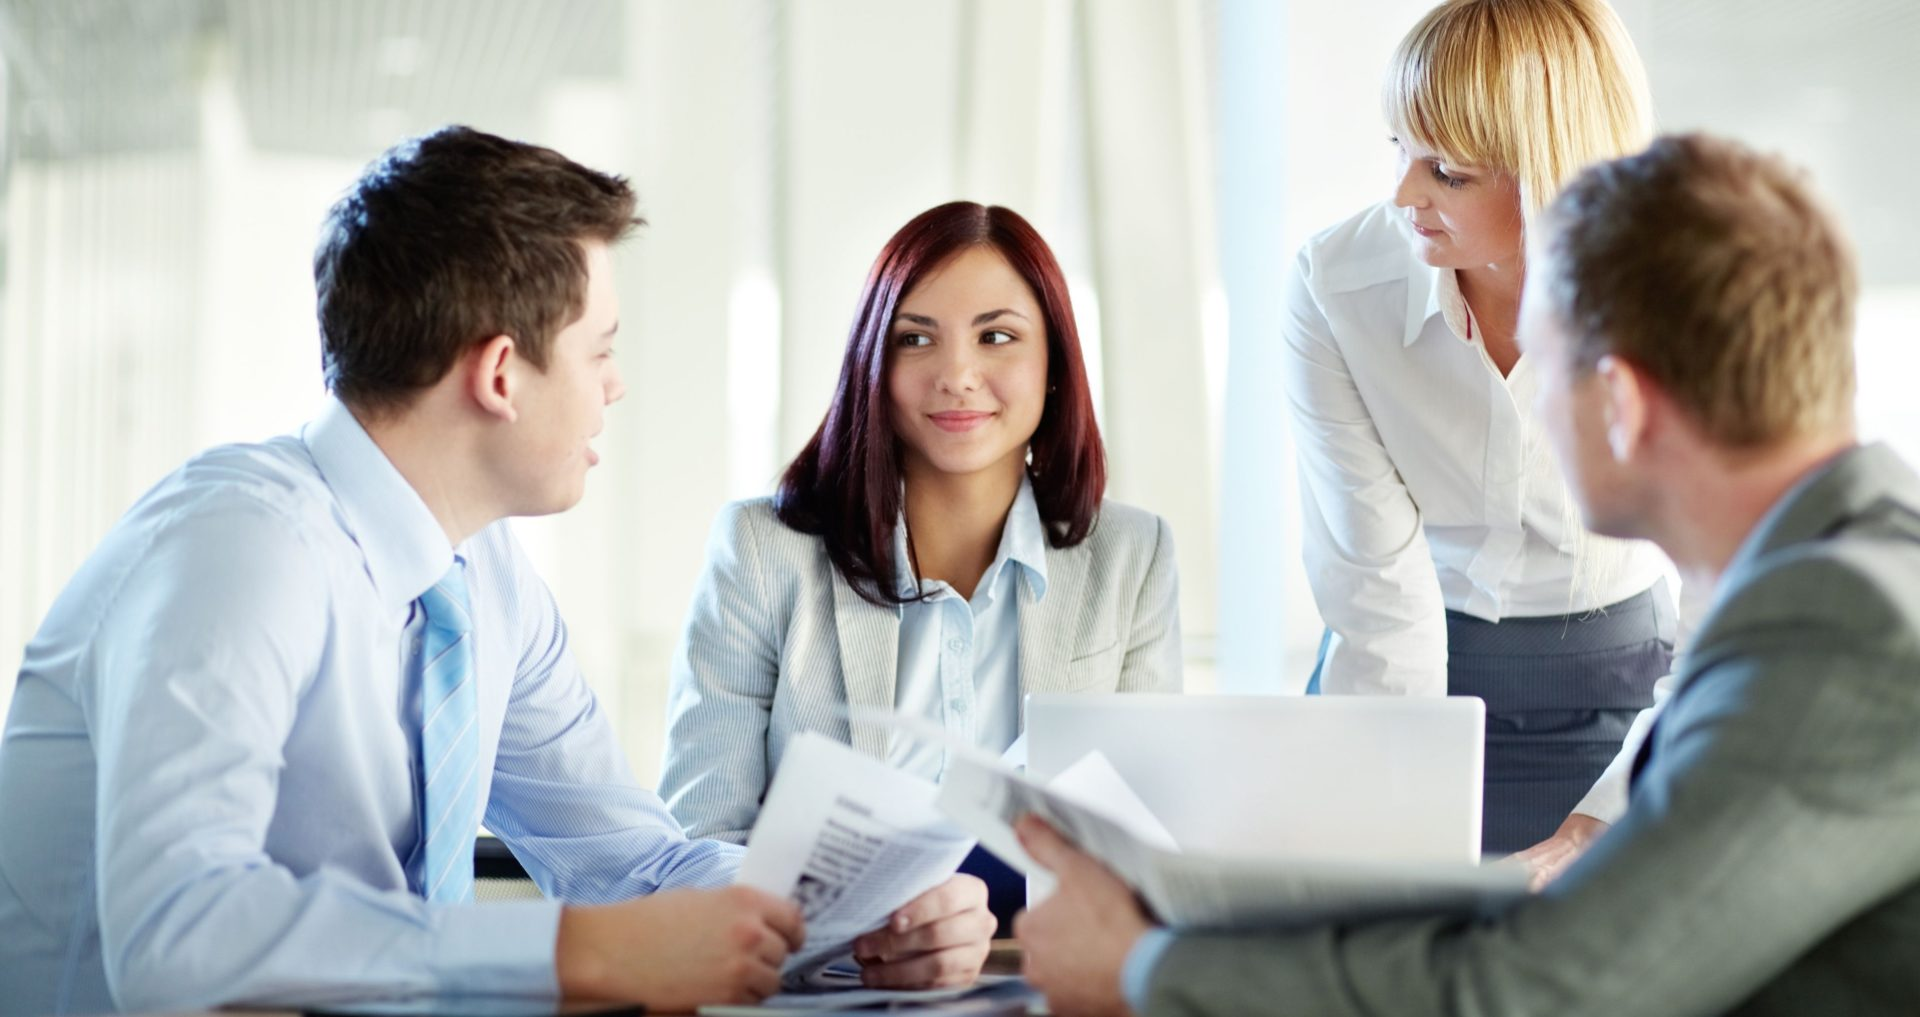 Communication Skills For Women In The Workplace